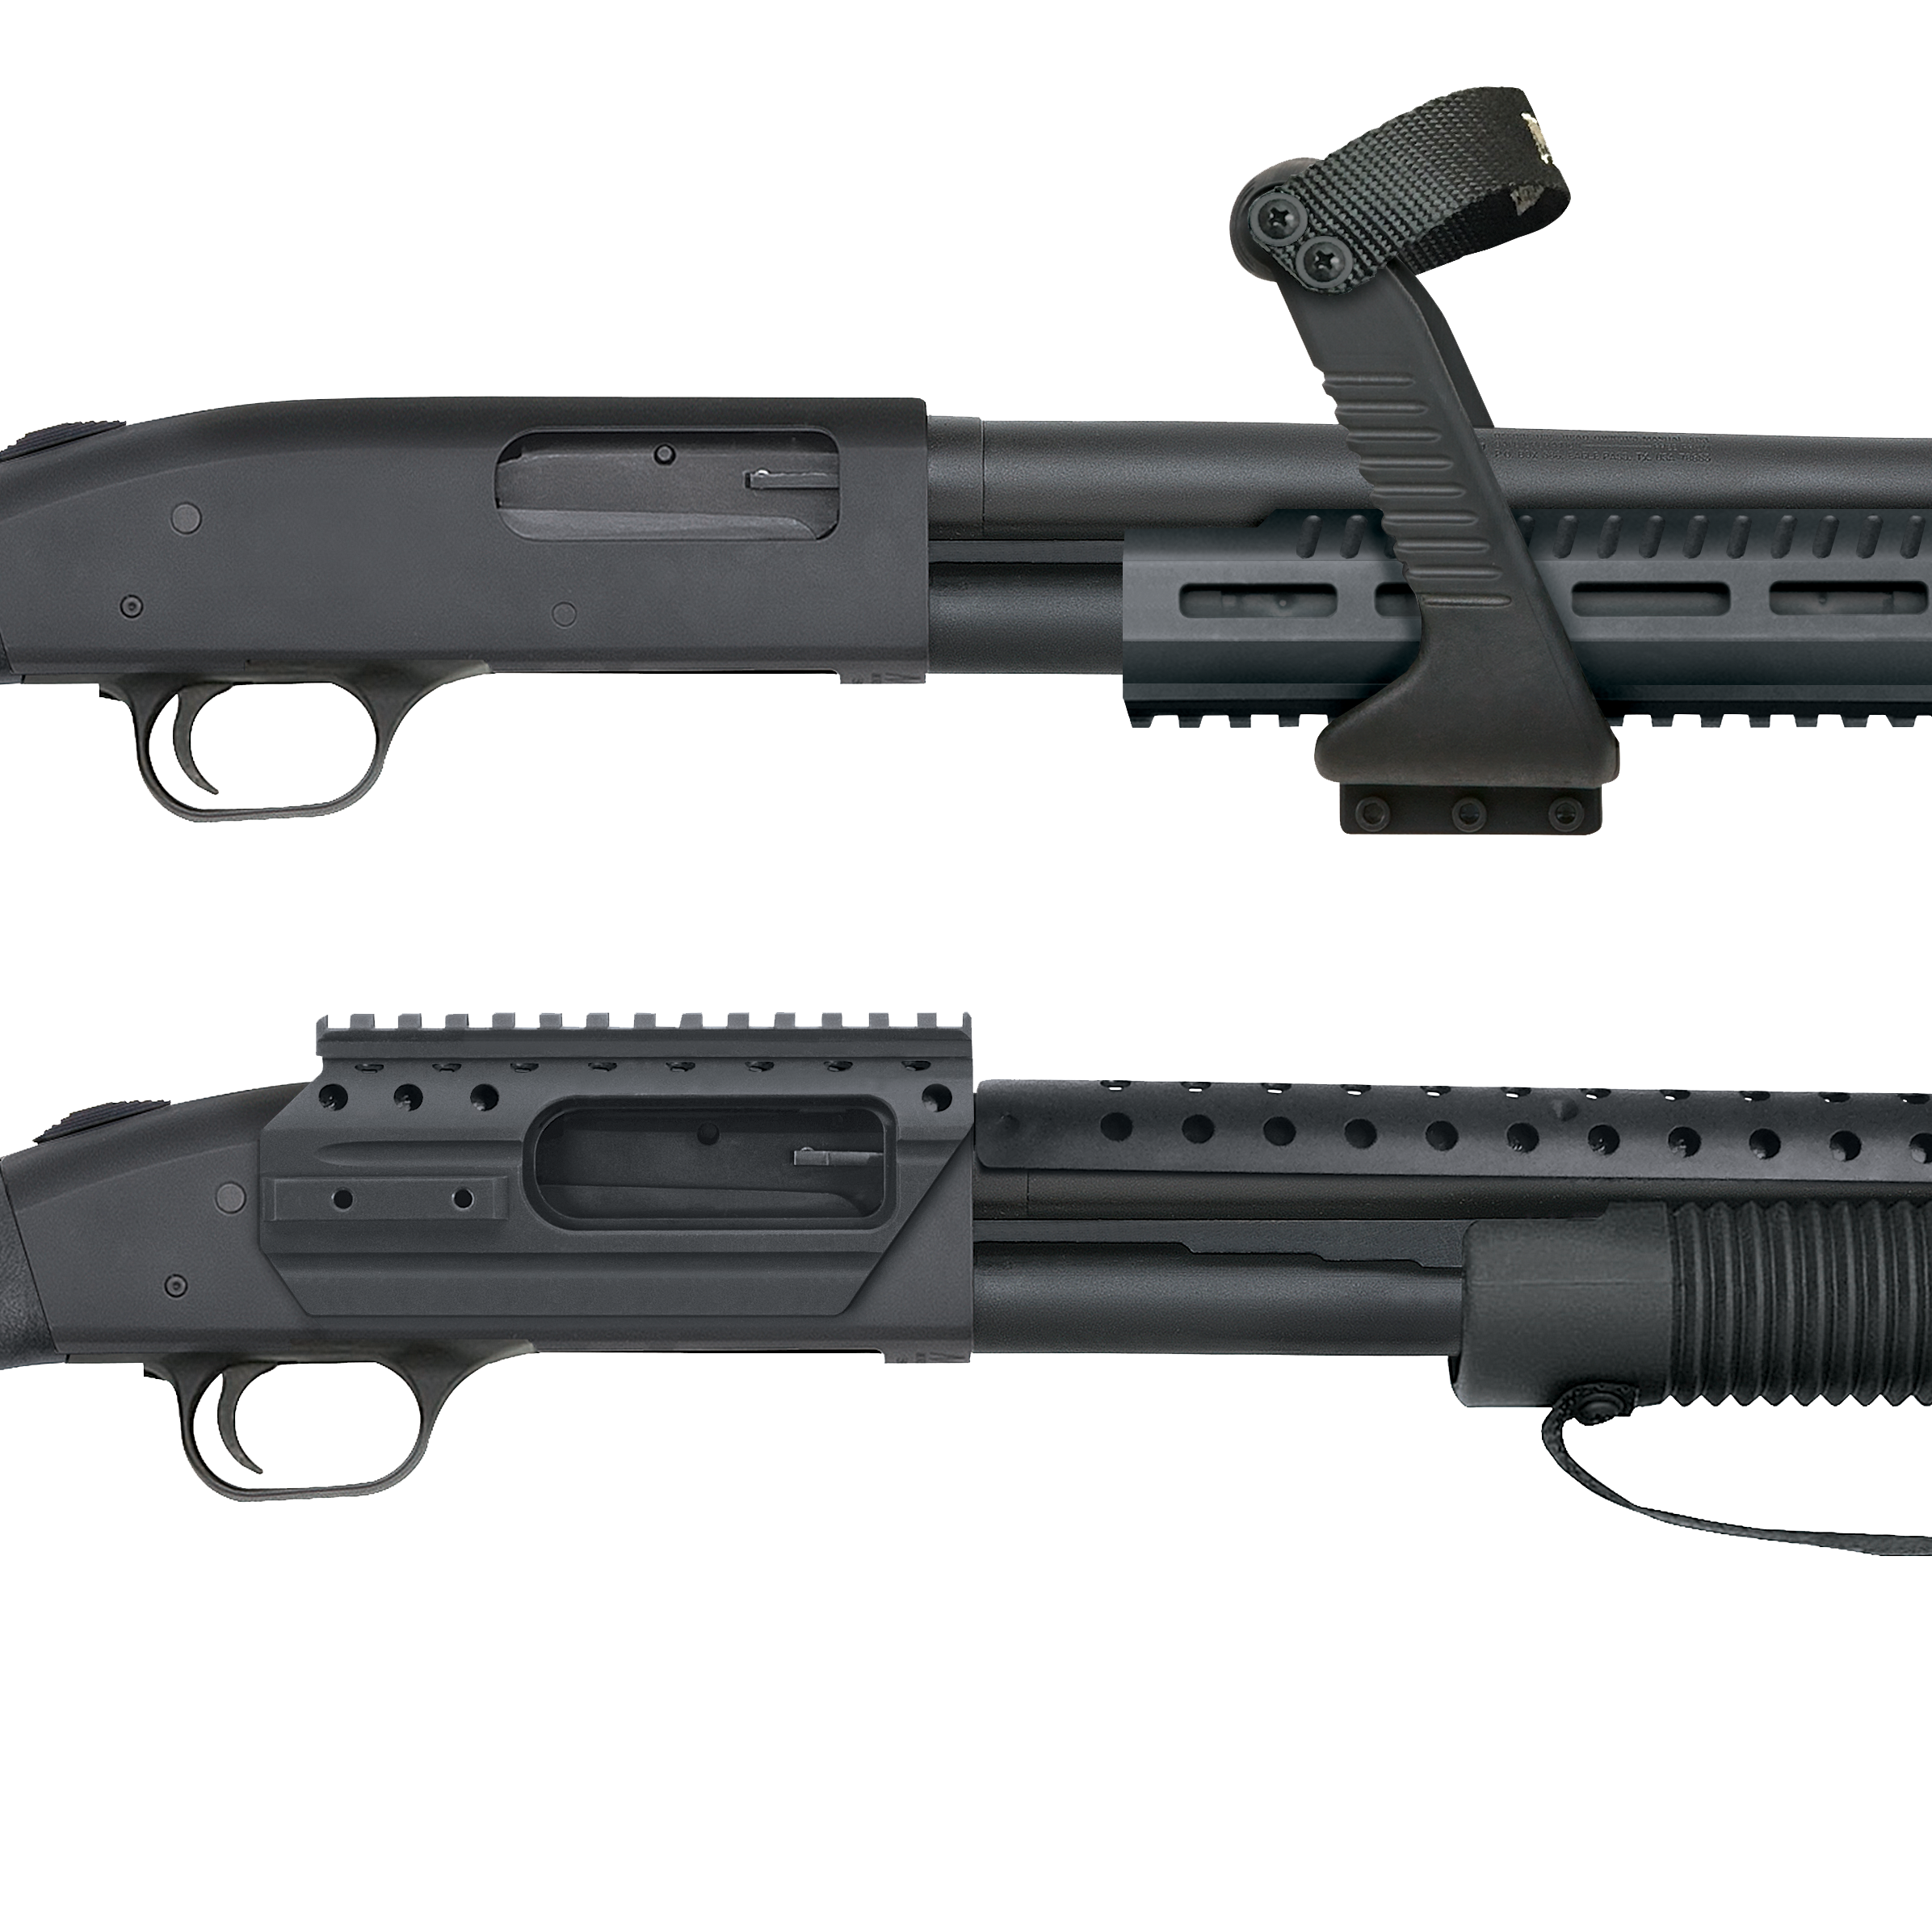 MOSSBERG LAUNCHES TWO NEW MODELS IN THE SHOCKWAVE SERIES OF FIREARMS!